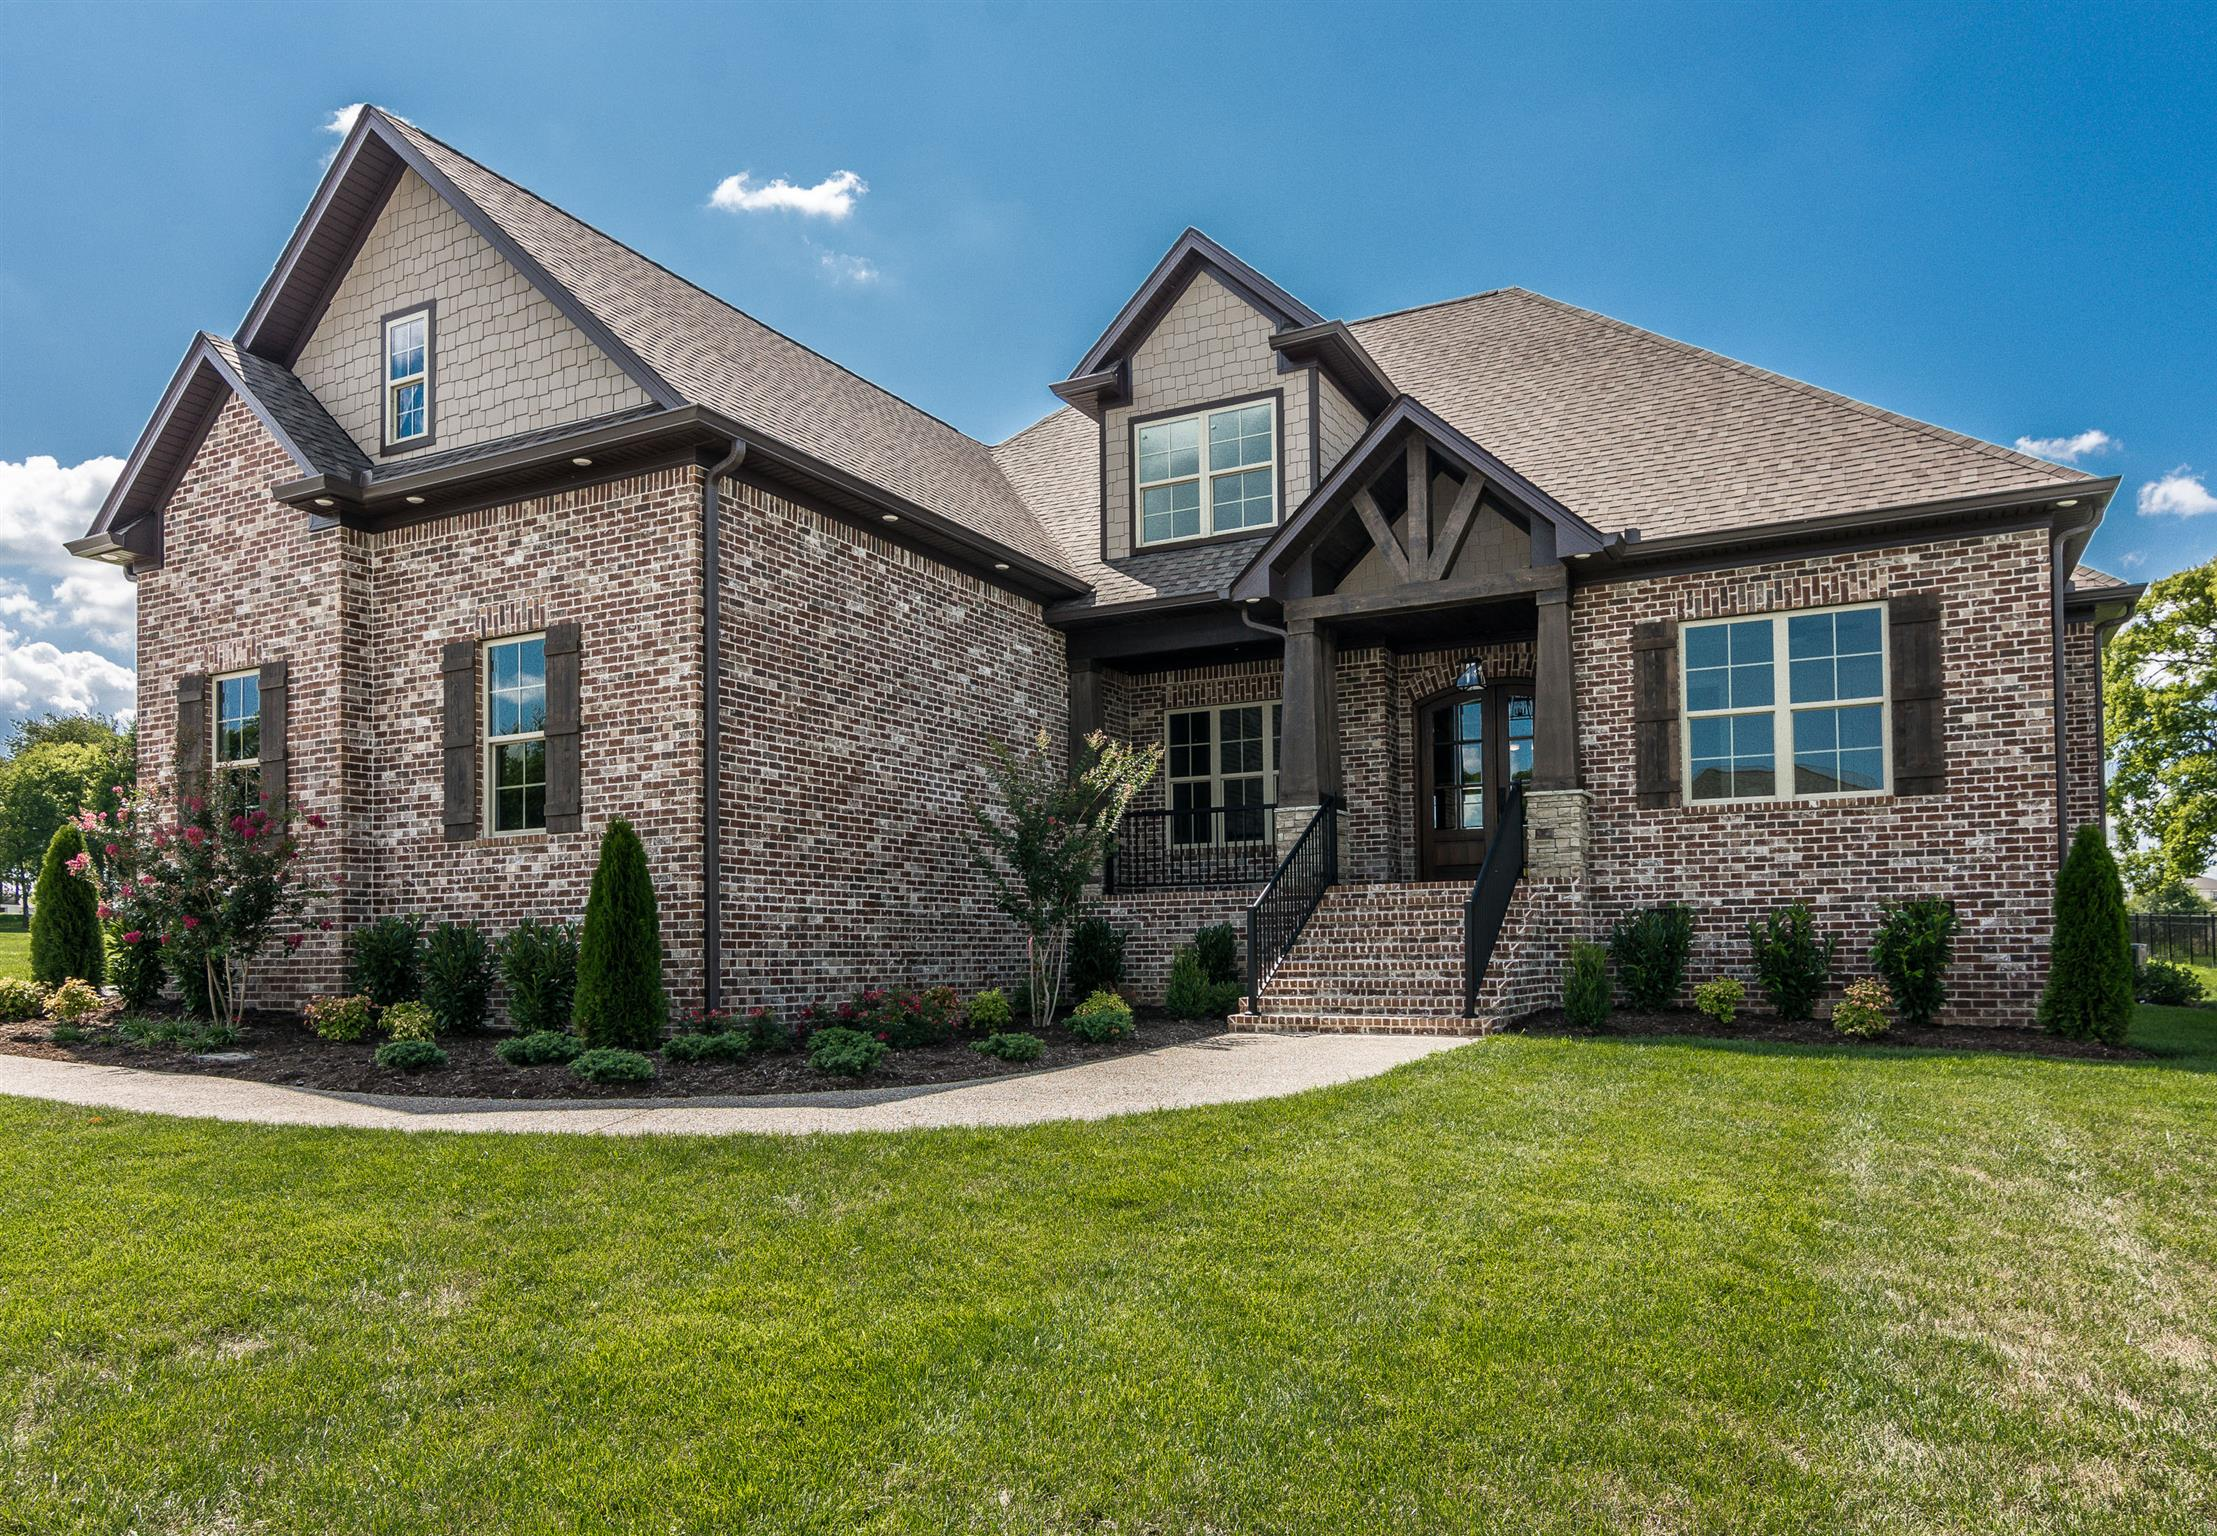 1035 Albatross Way, Gallatin, Tennessee